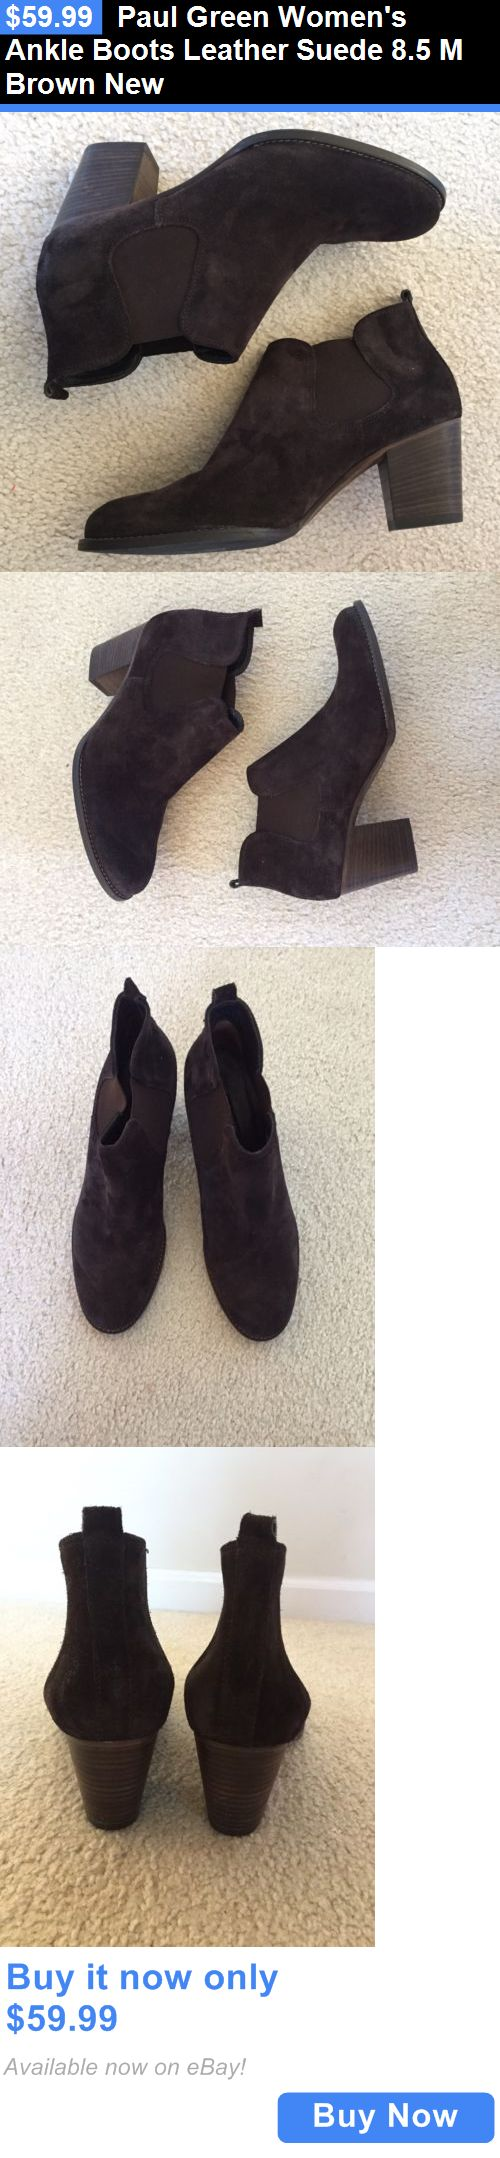 Women Boots: Paul Green Womens Ankle Boots Leather Suede 8.5 M Brown New BUY IT NOW ONLY: $59.99